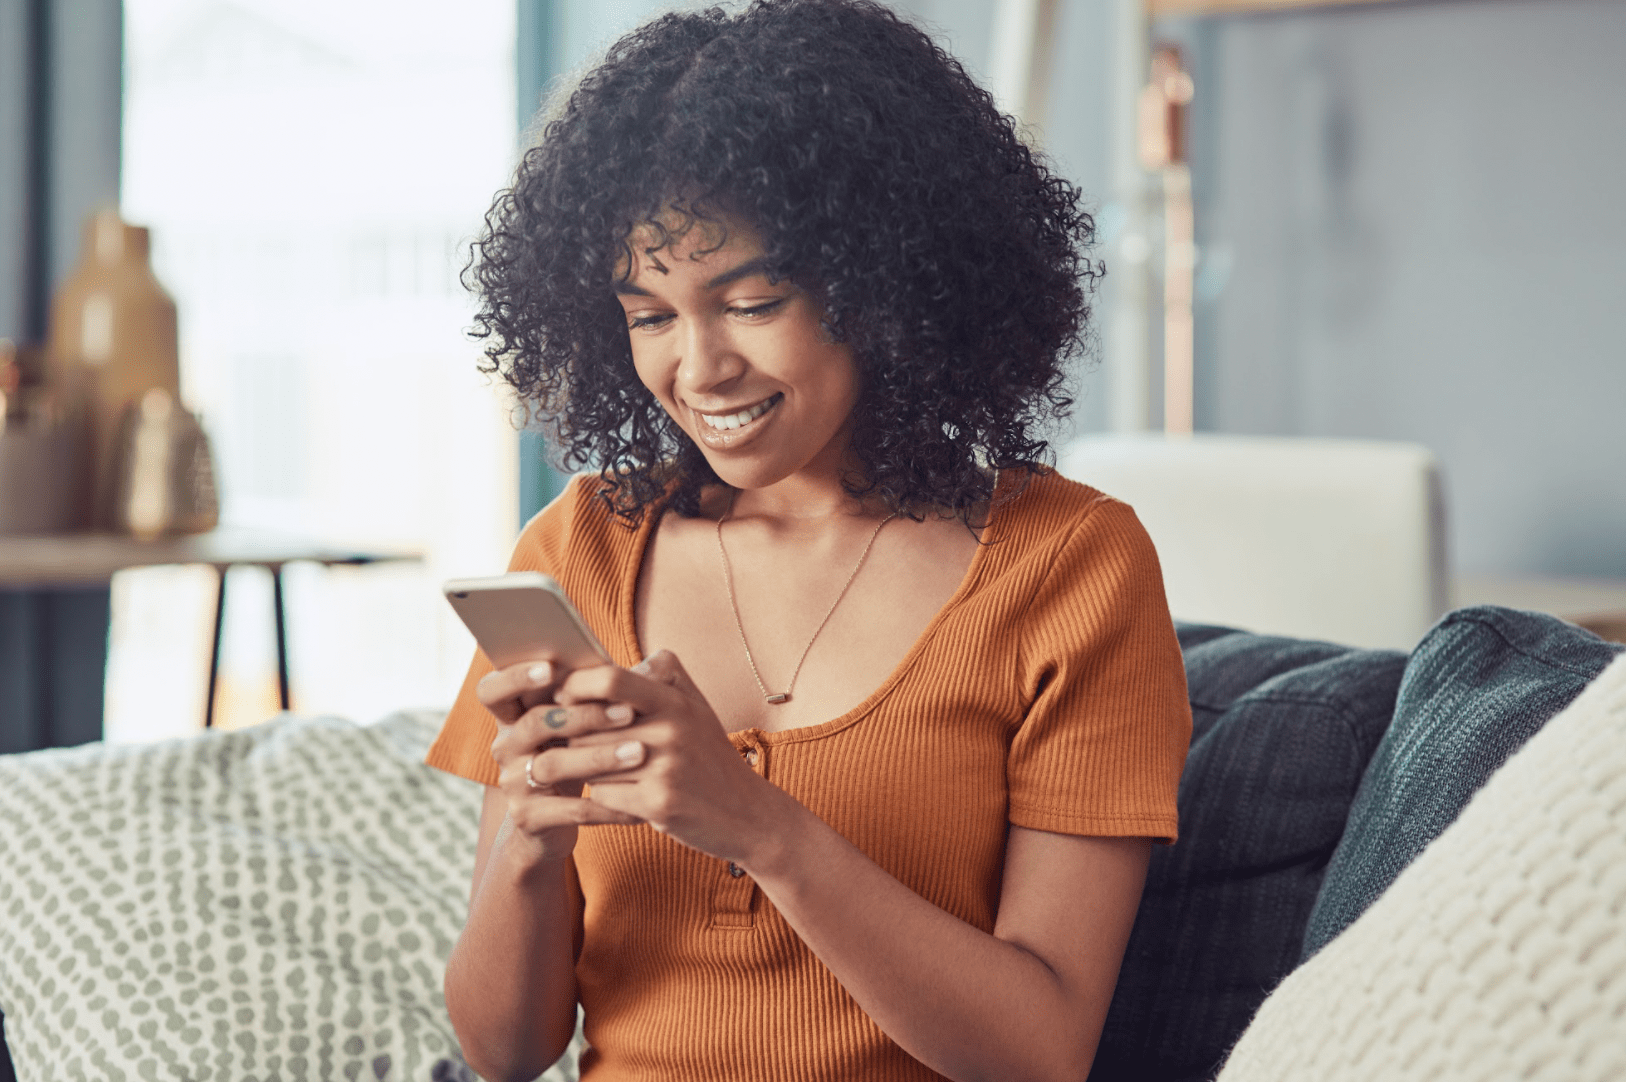 woman looking down at phone and smiling